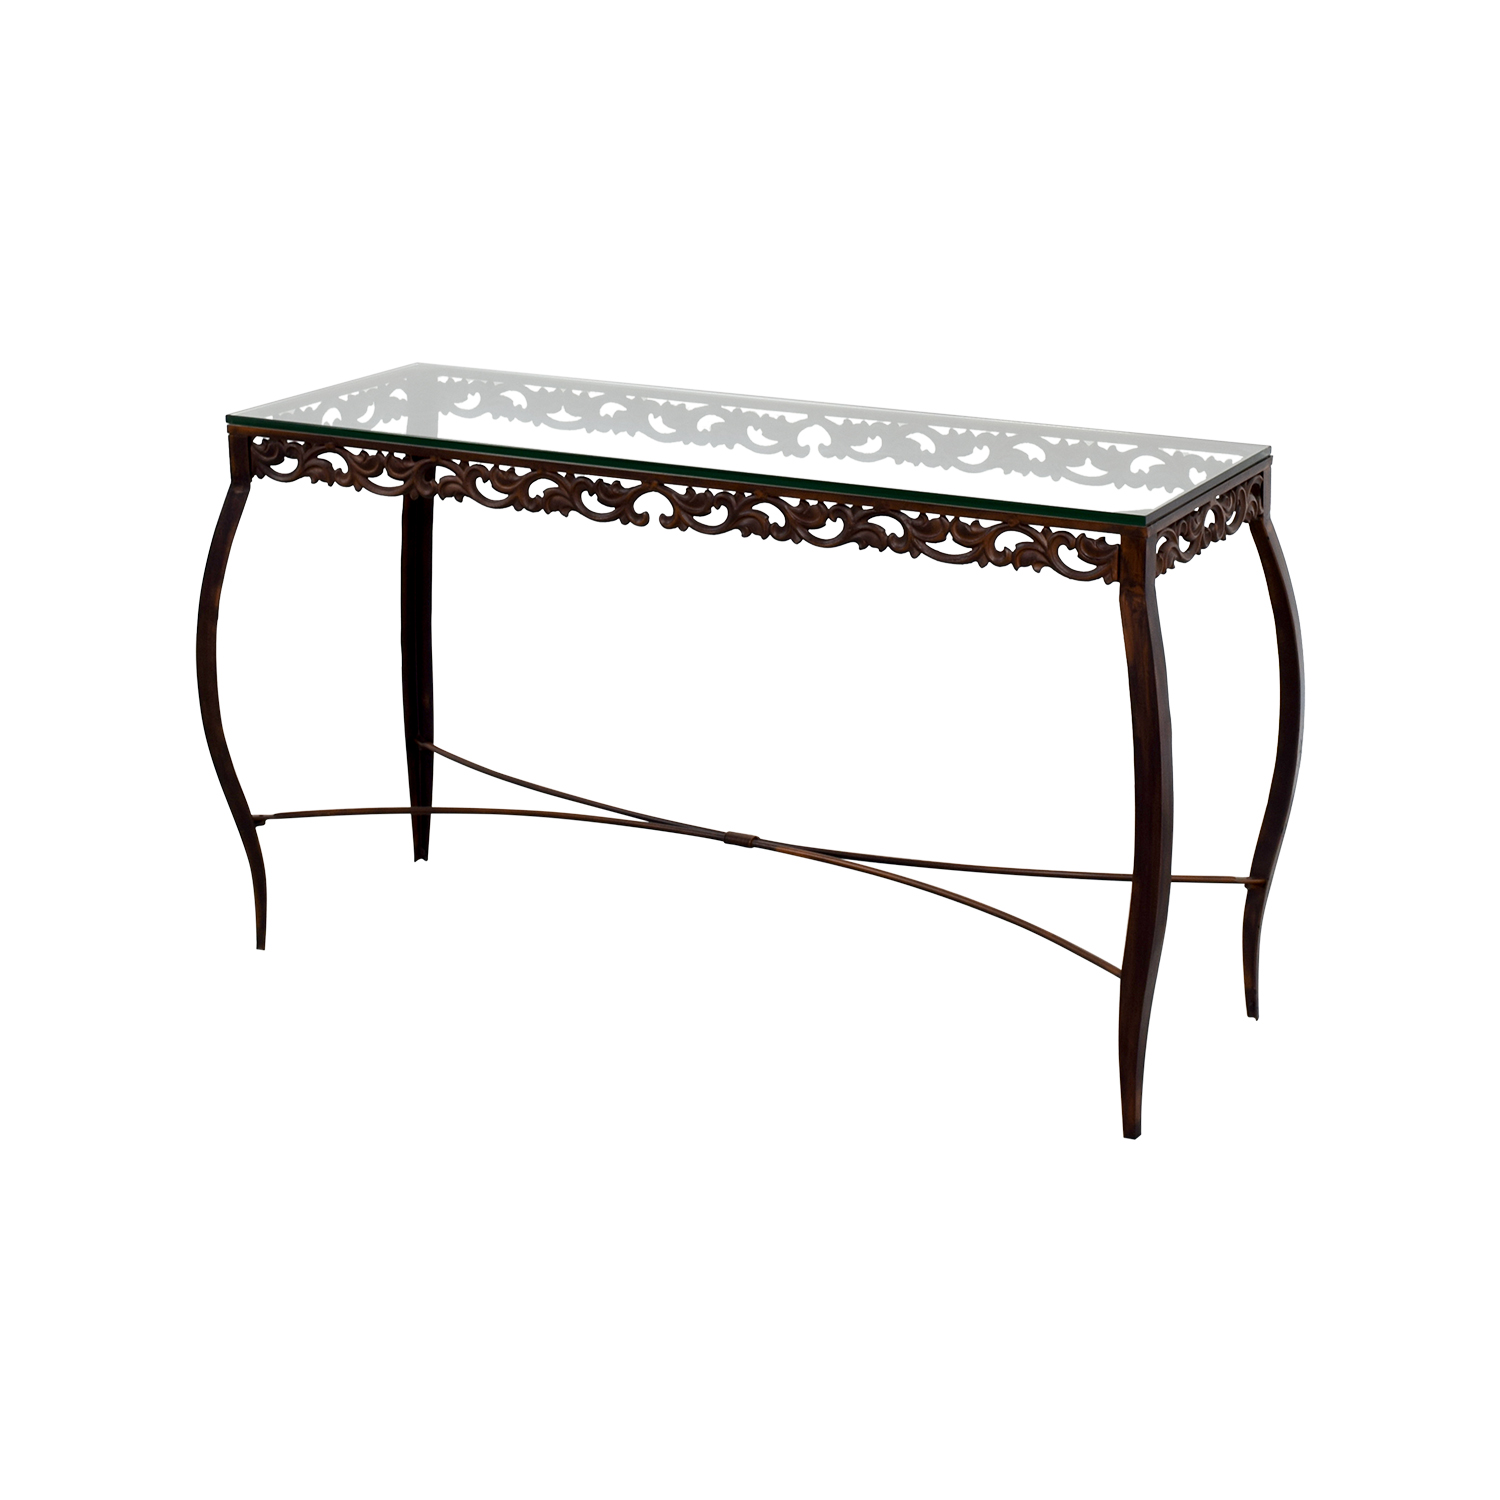 90% OFF - Pier 1 Imports Pier 1 Imports Glass Console Table / Tables